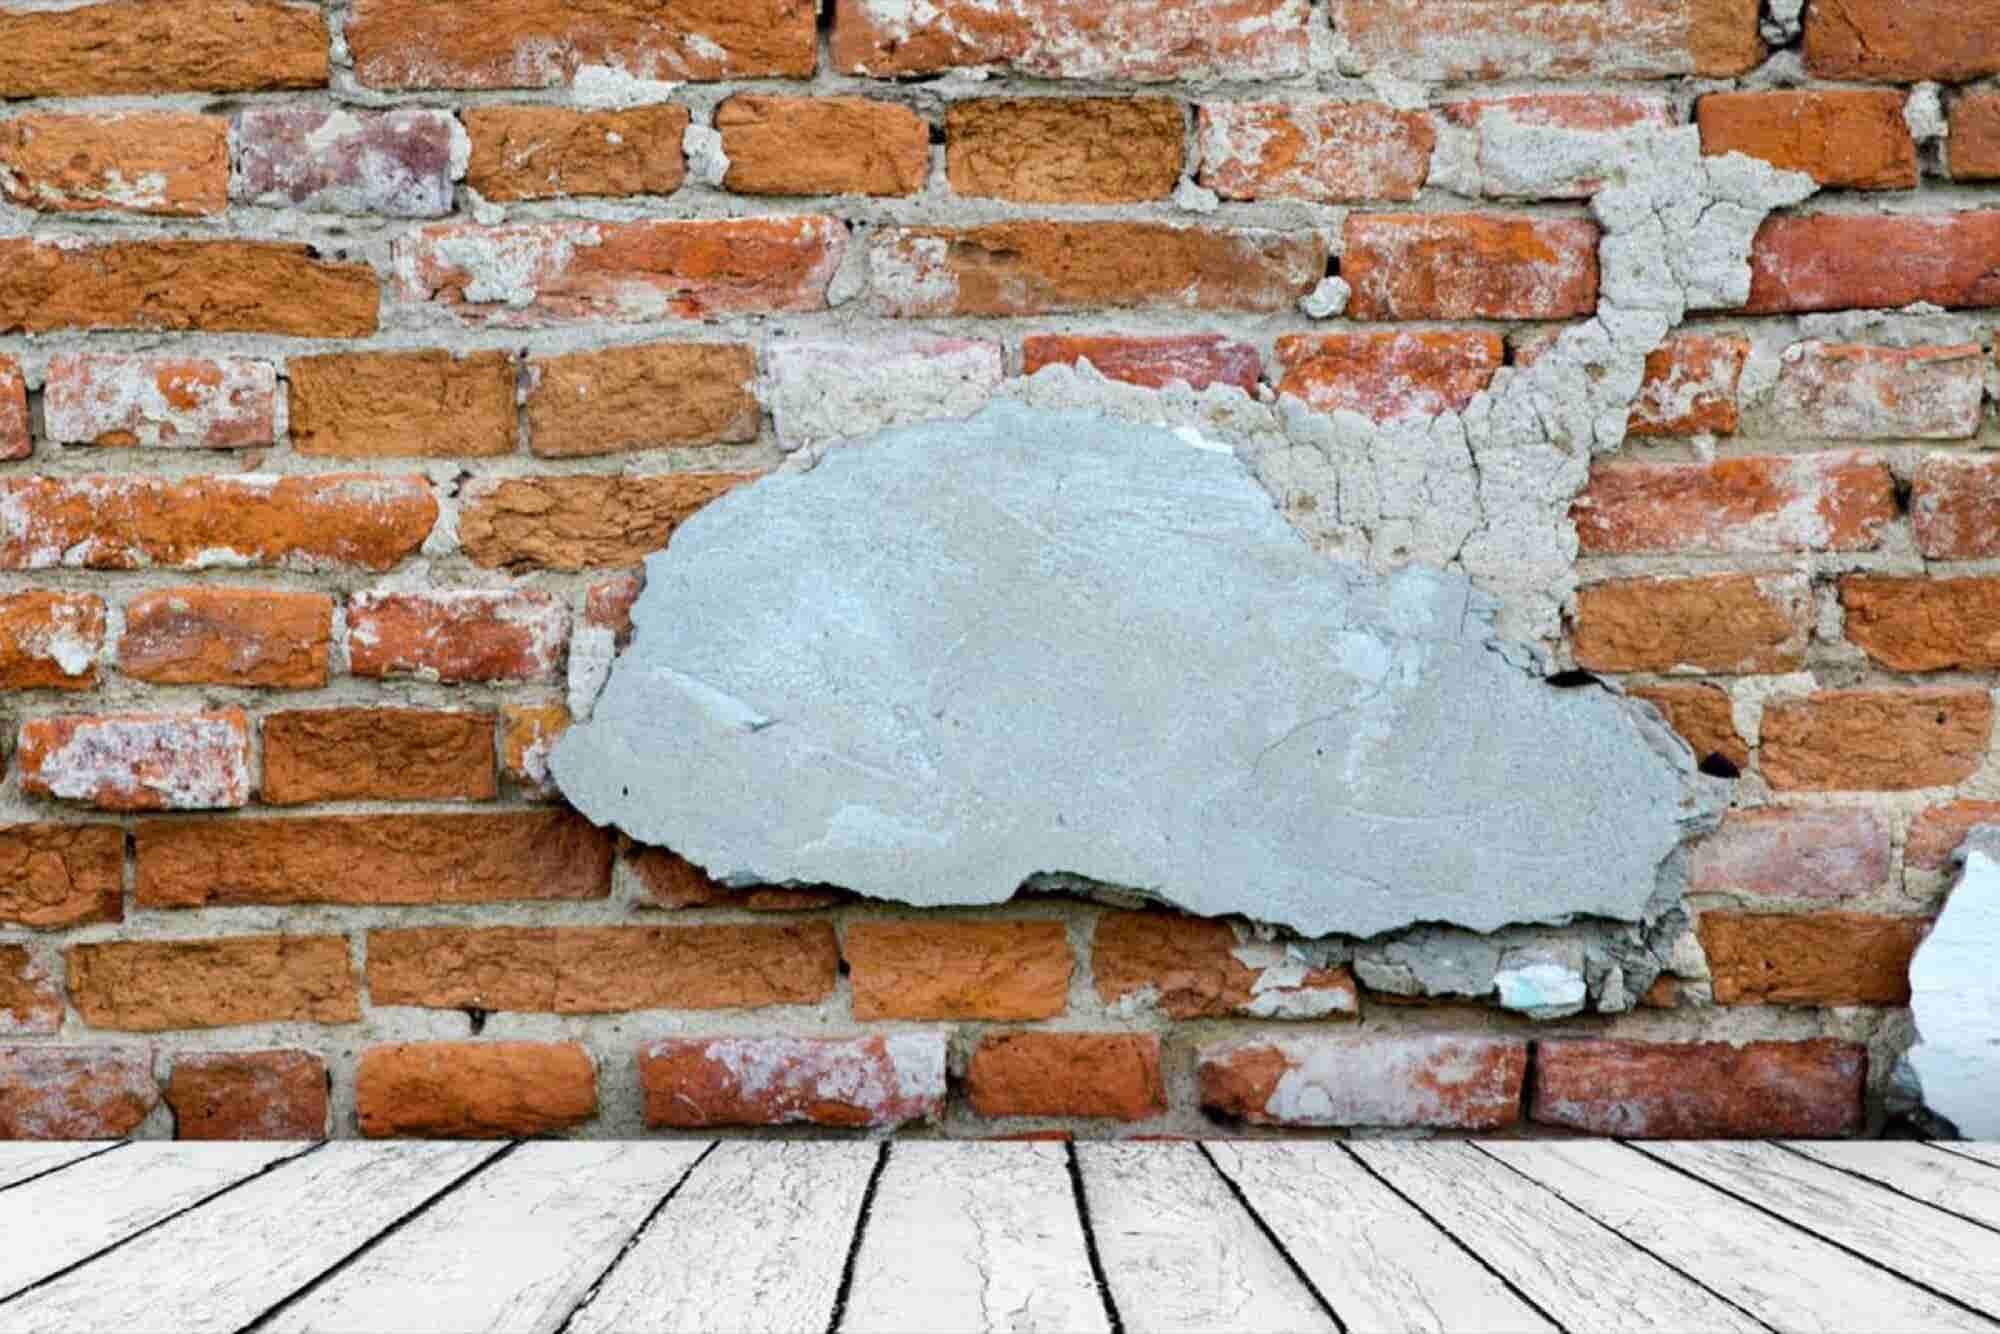 The Meritocracy Myth: Why Entrepreneurship Is Better Than 'Leaning In' to a Brick Wall